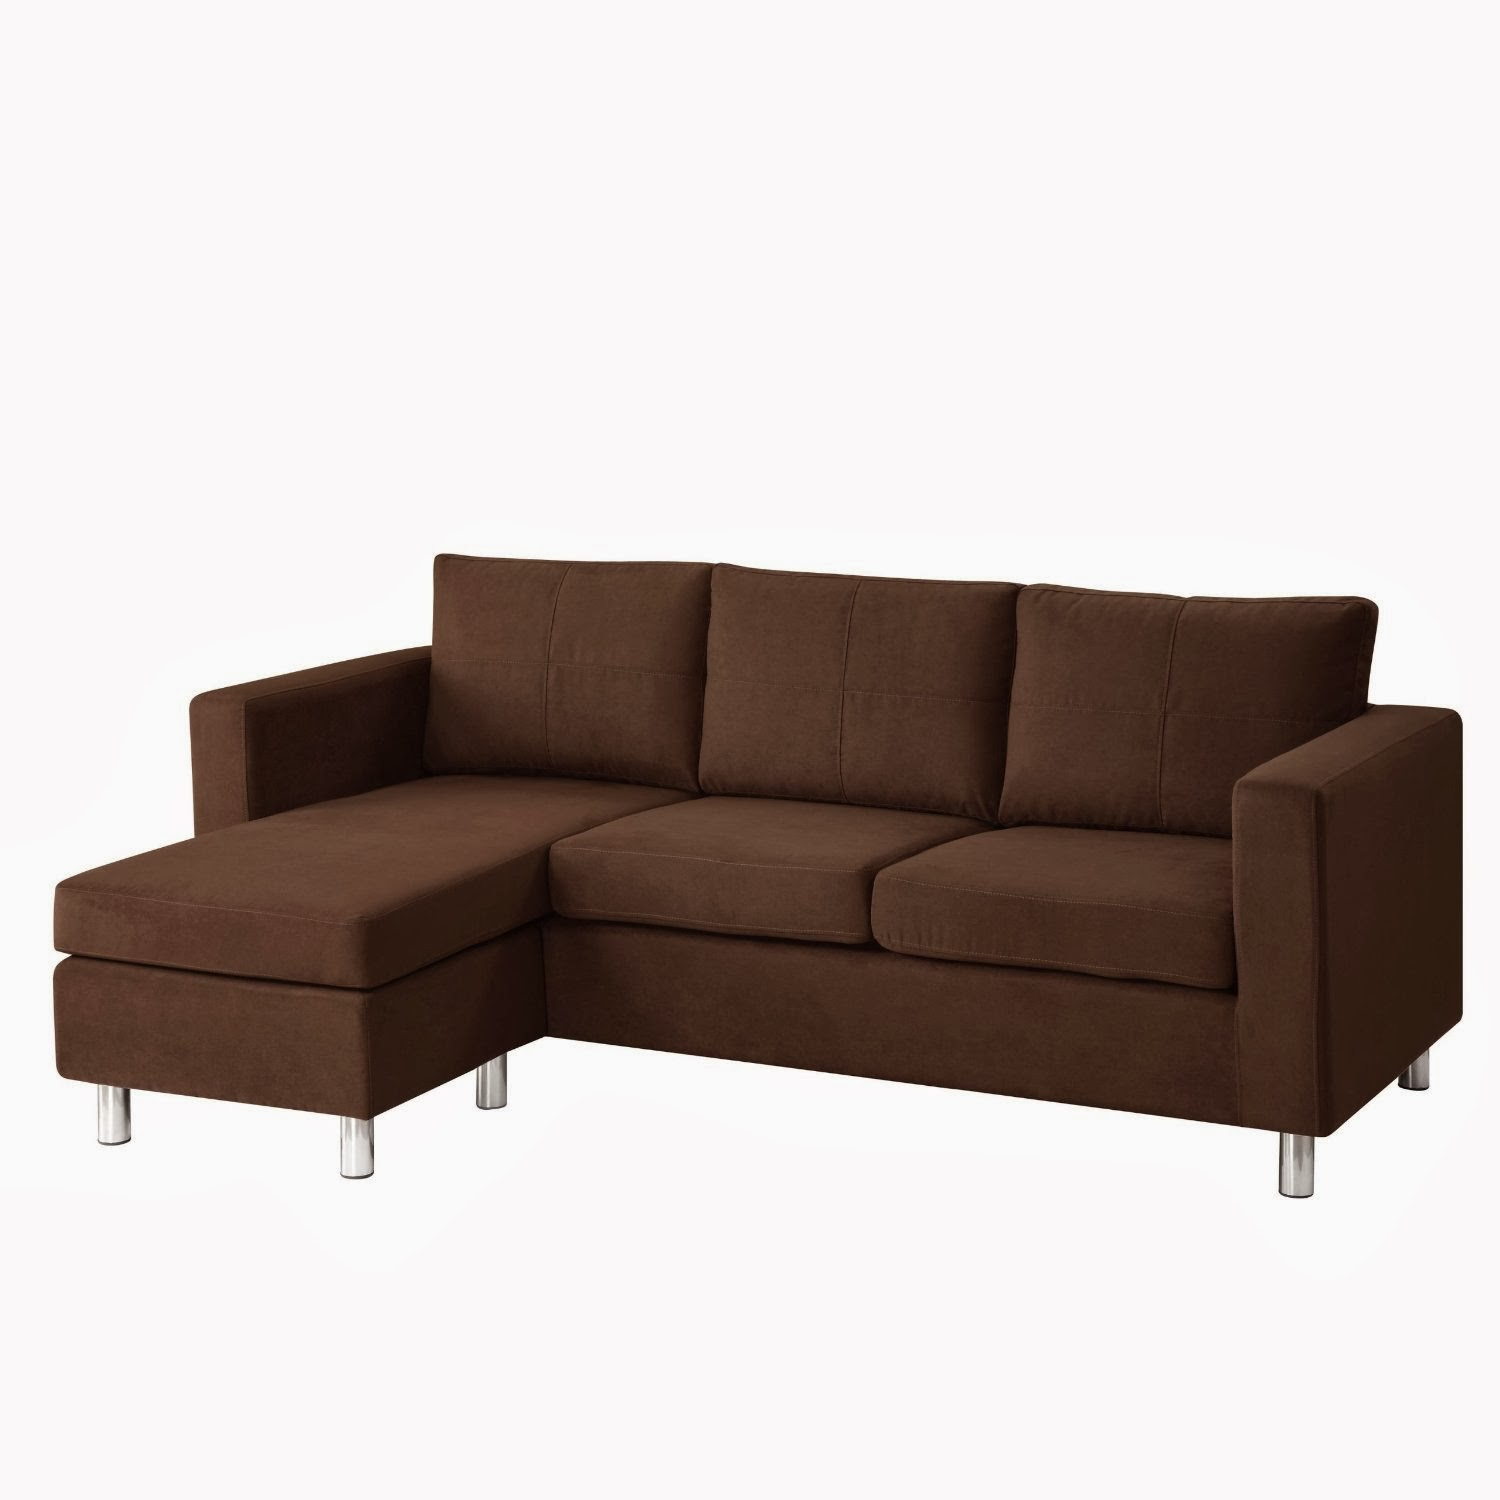 Small sectional sofas reviews small sectional sofa with for Chaise furniture